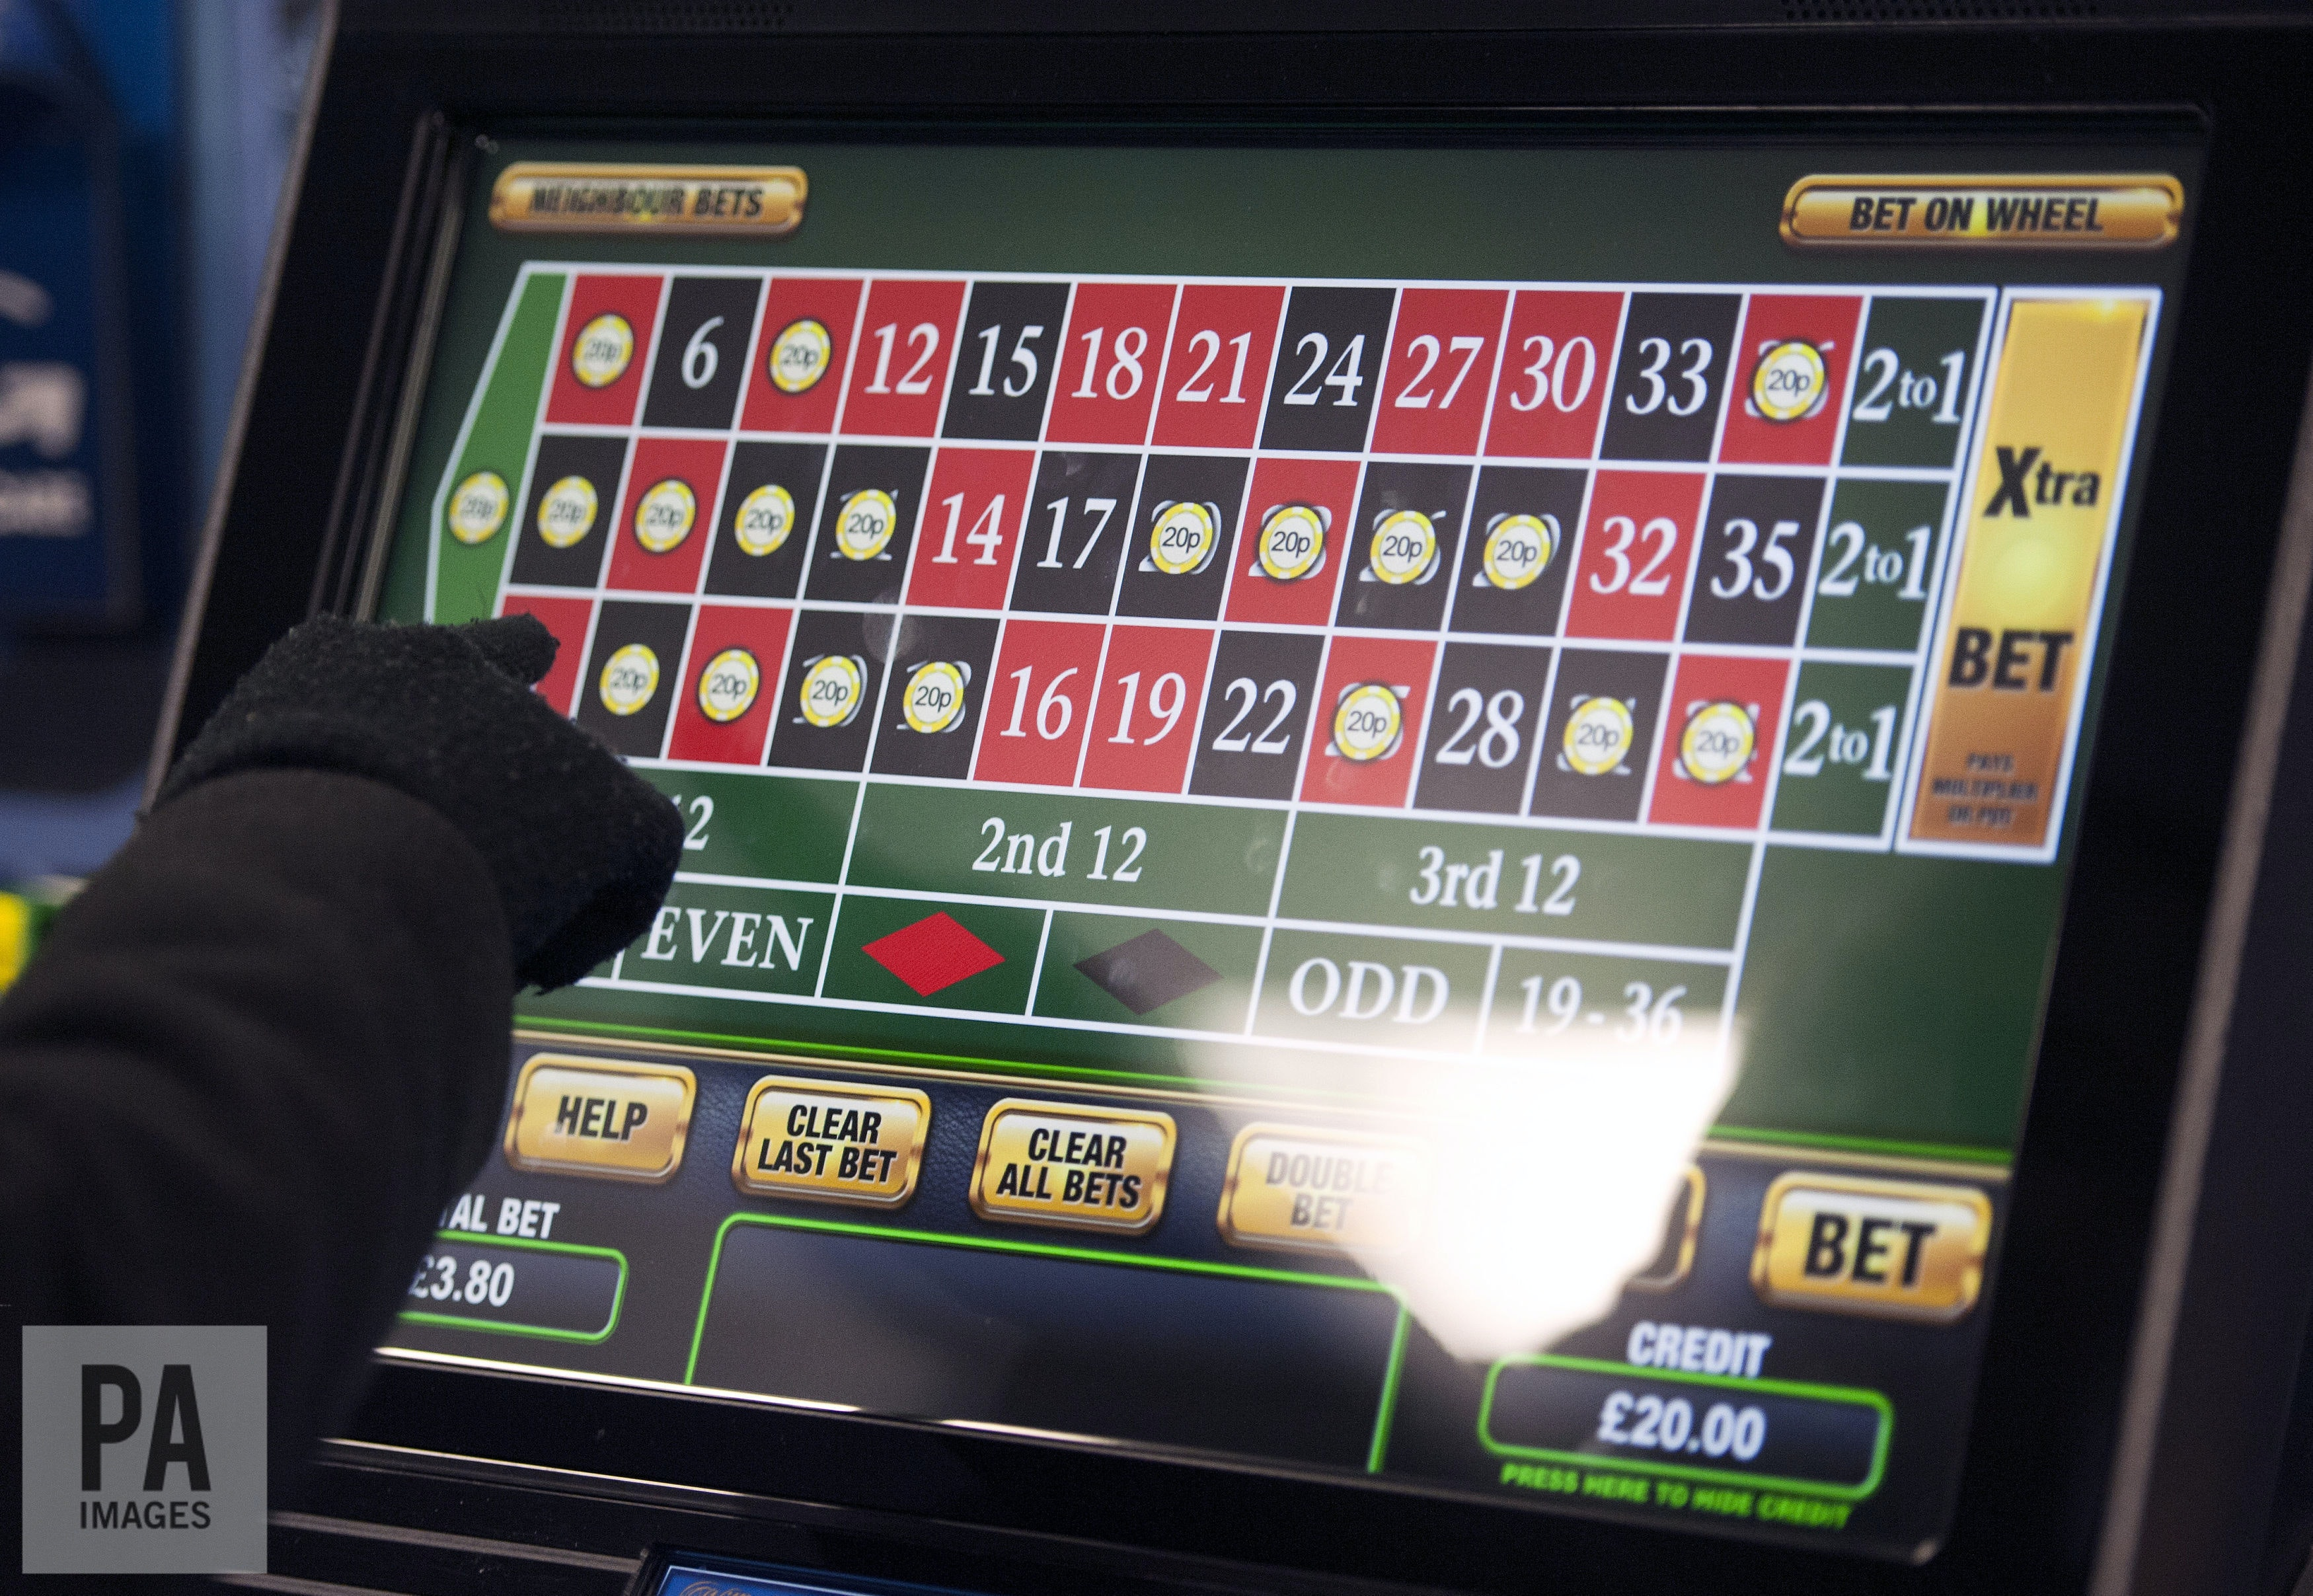 social impact of casinos A good way to wreck a local economy: build casinos  it's found in the casinos' economic and social impact on the  the impact of casinos on neighboring.